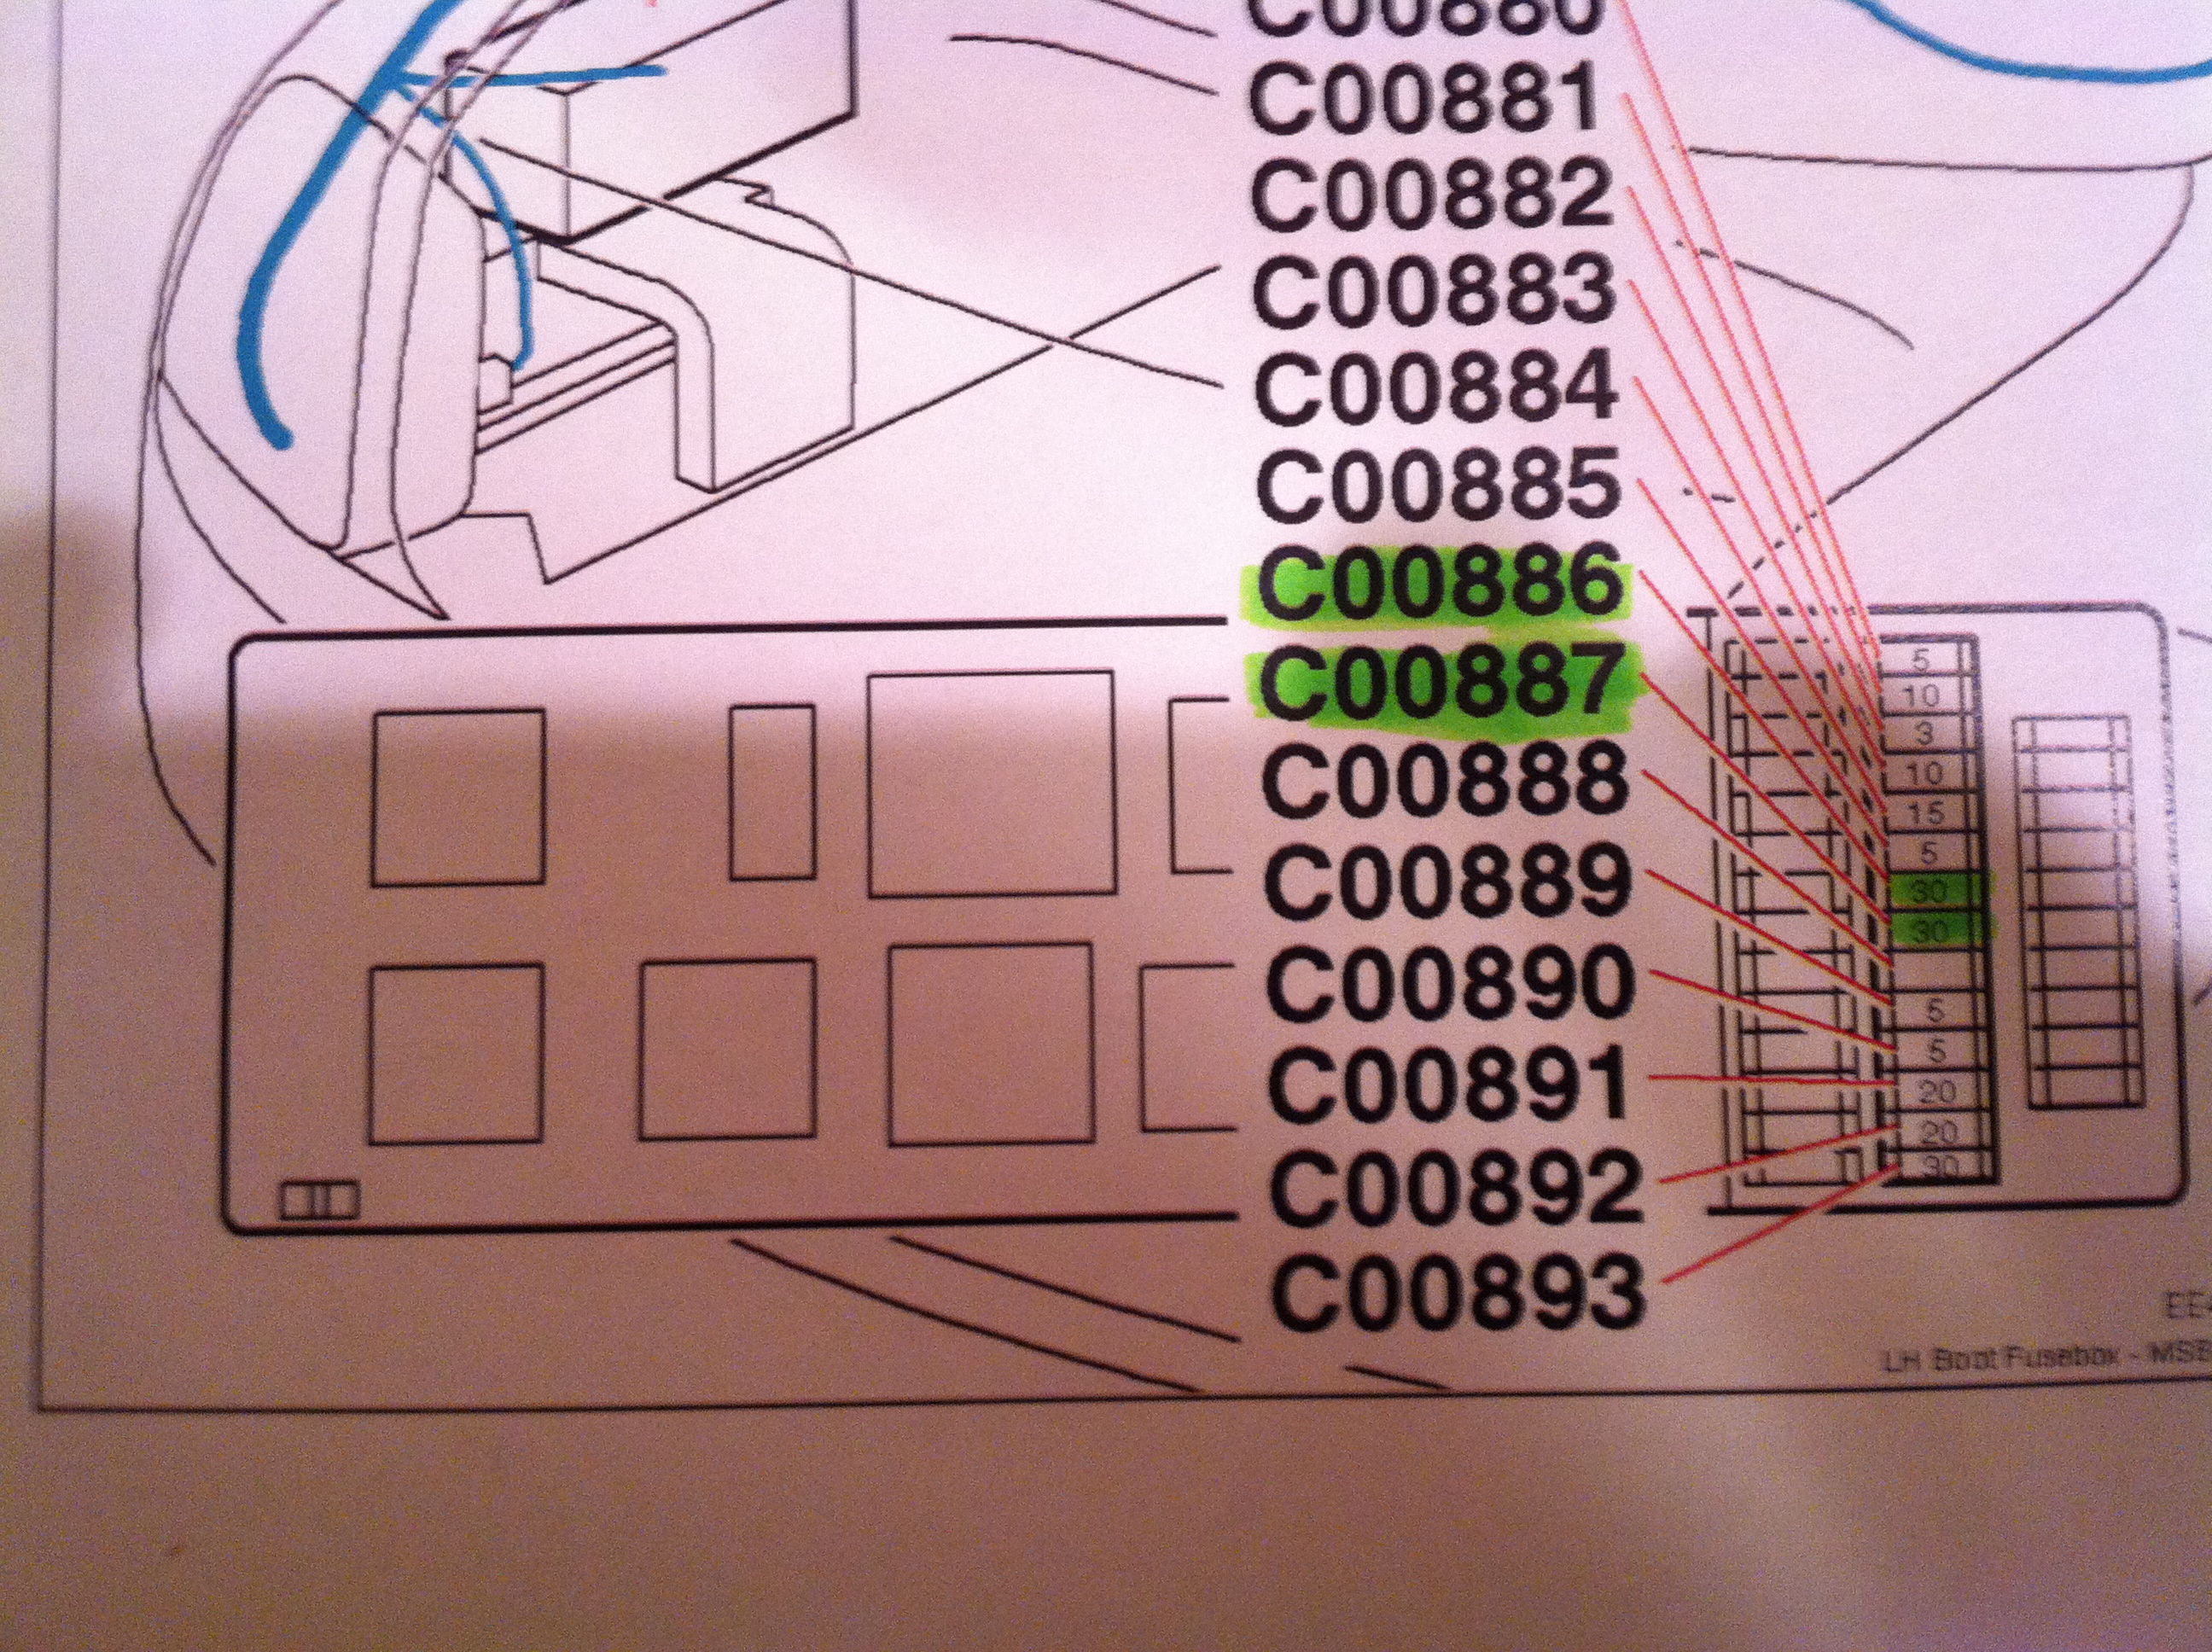 Bentley Continental Wiring Diagram Data Schema 1977 Mgb Fuse Box Schematic Gt Location Explained Diagrams Rh Dmdelectro Co